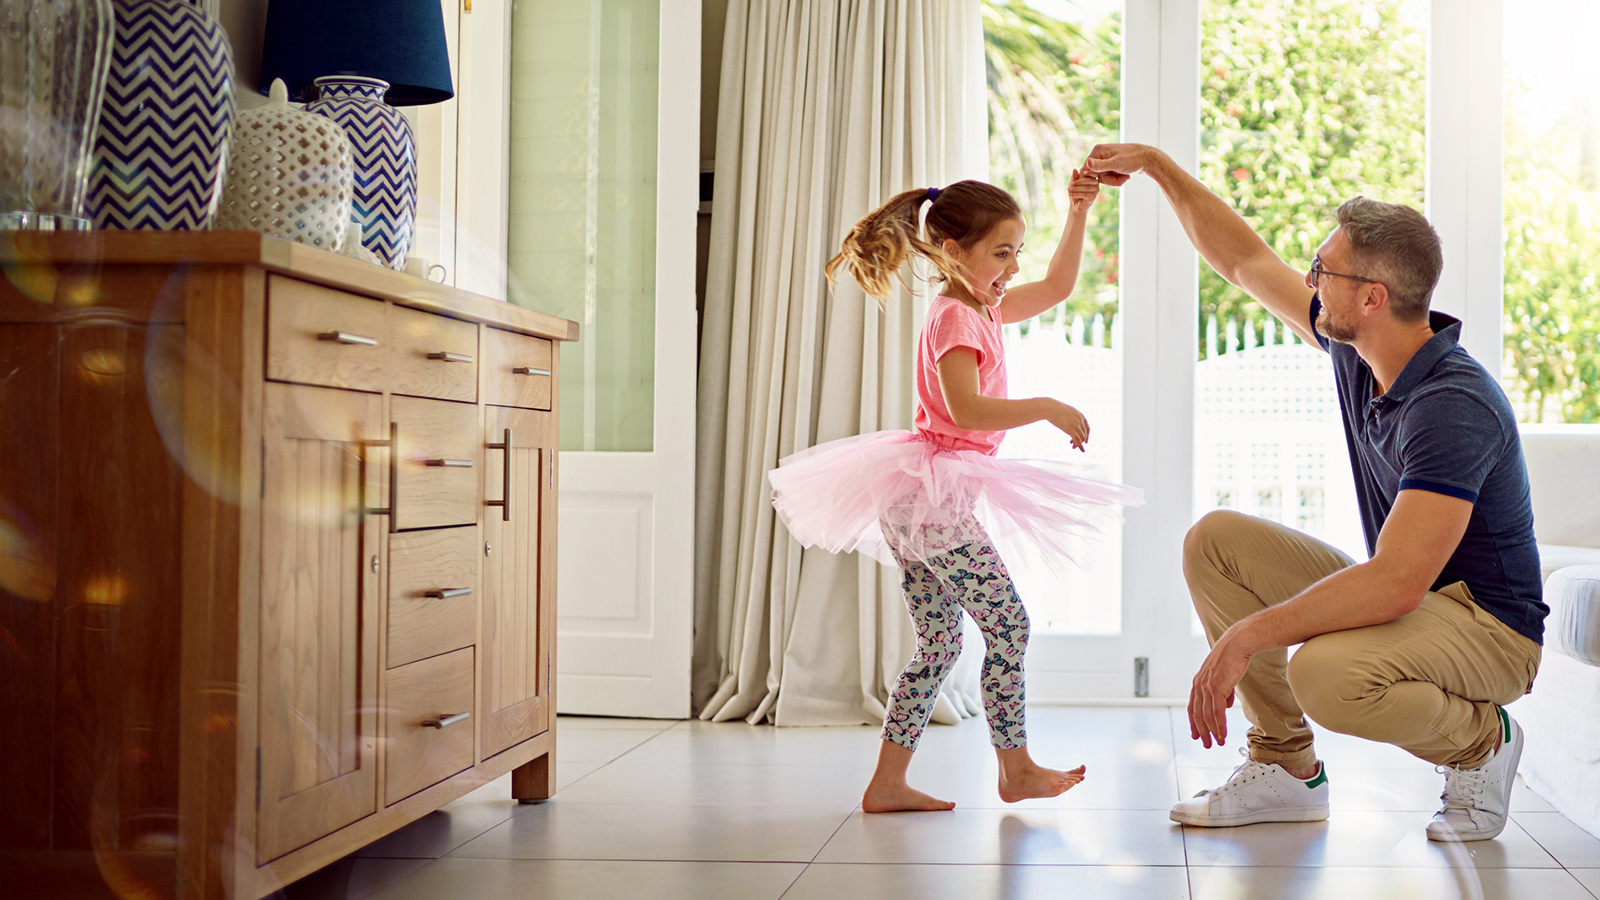 Father spinning daughter dressed in a tutu